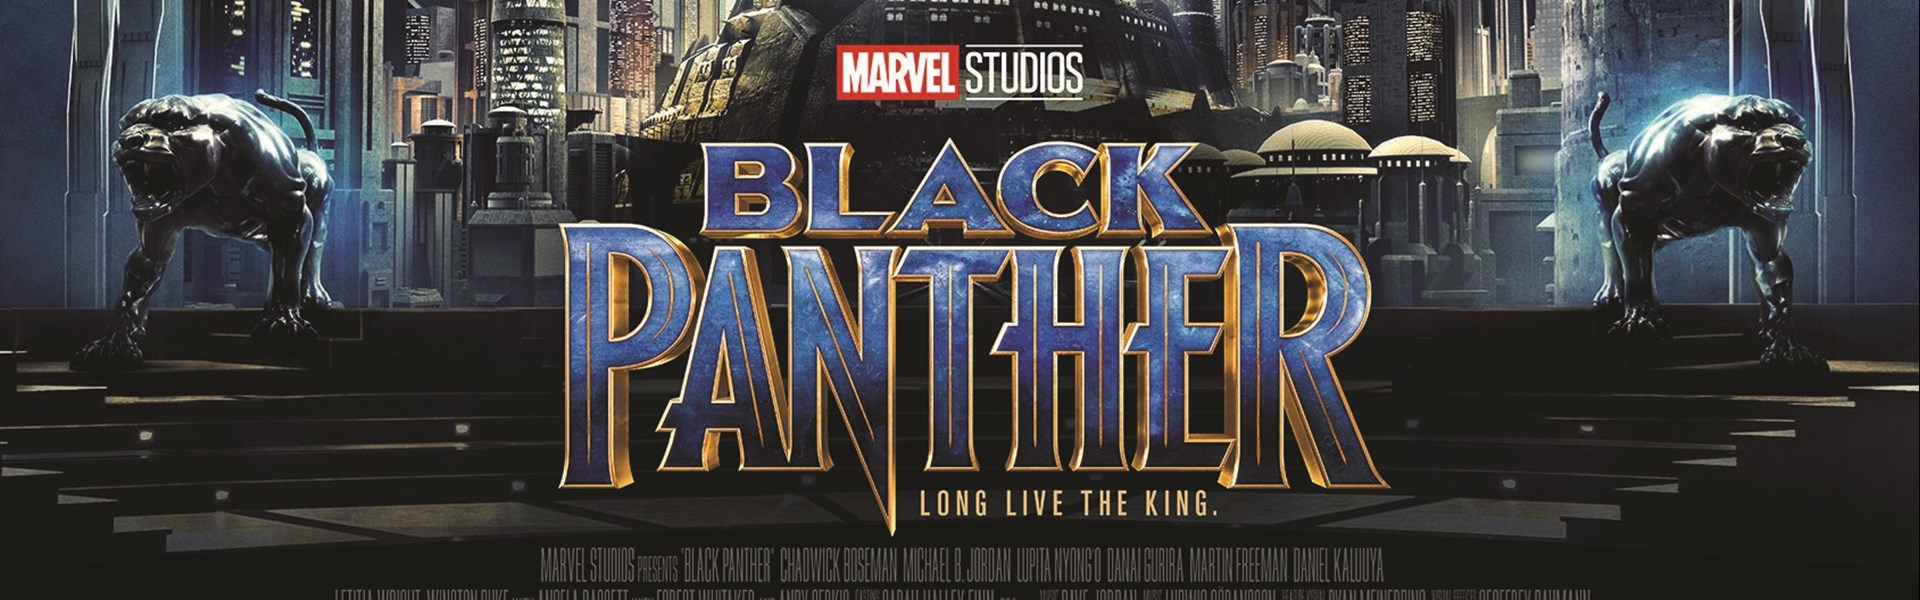 FILM: Black Panther (12A)